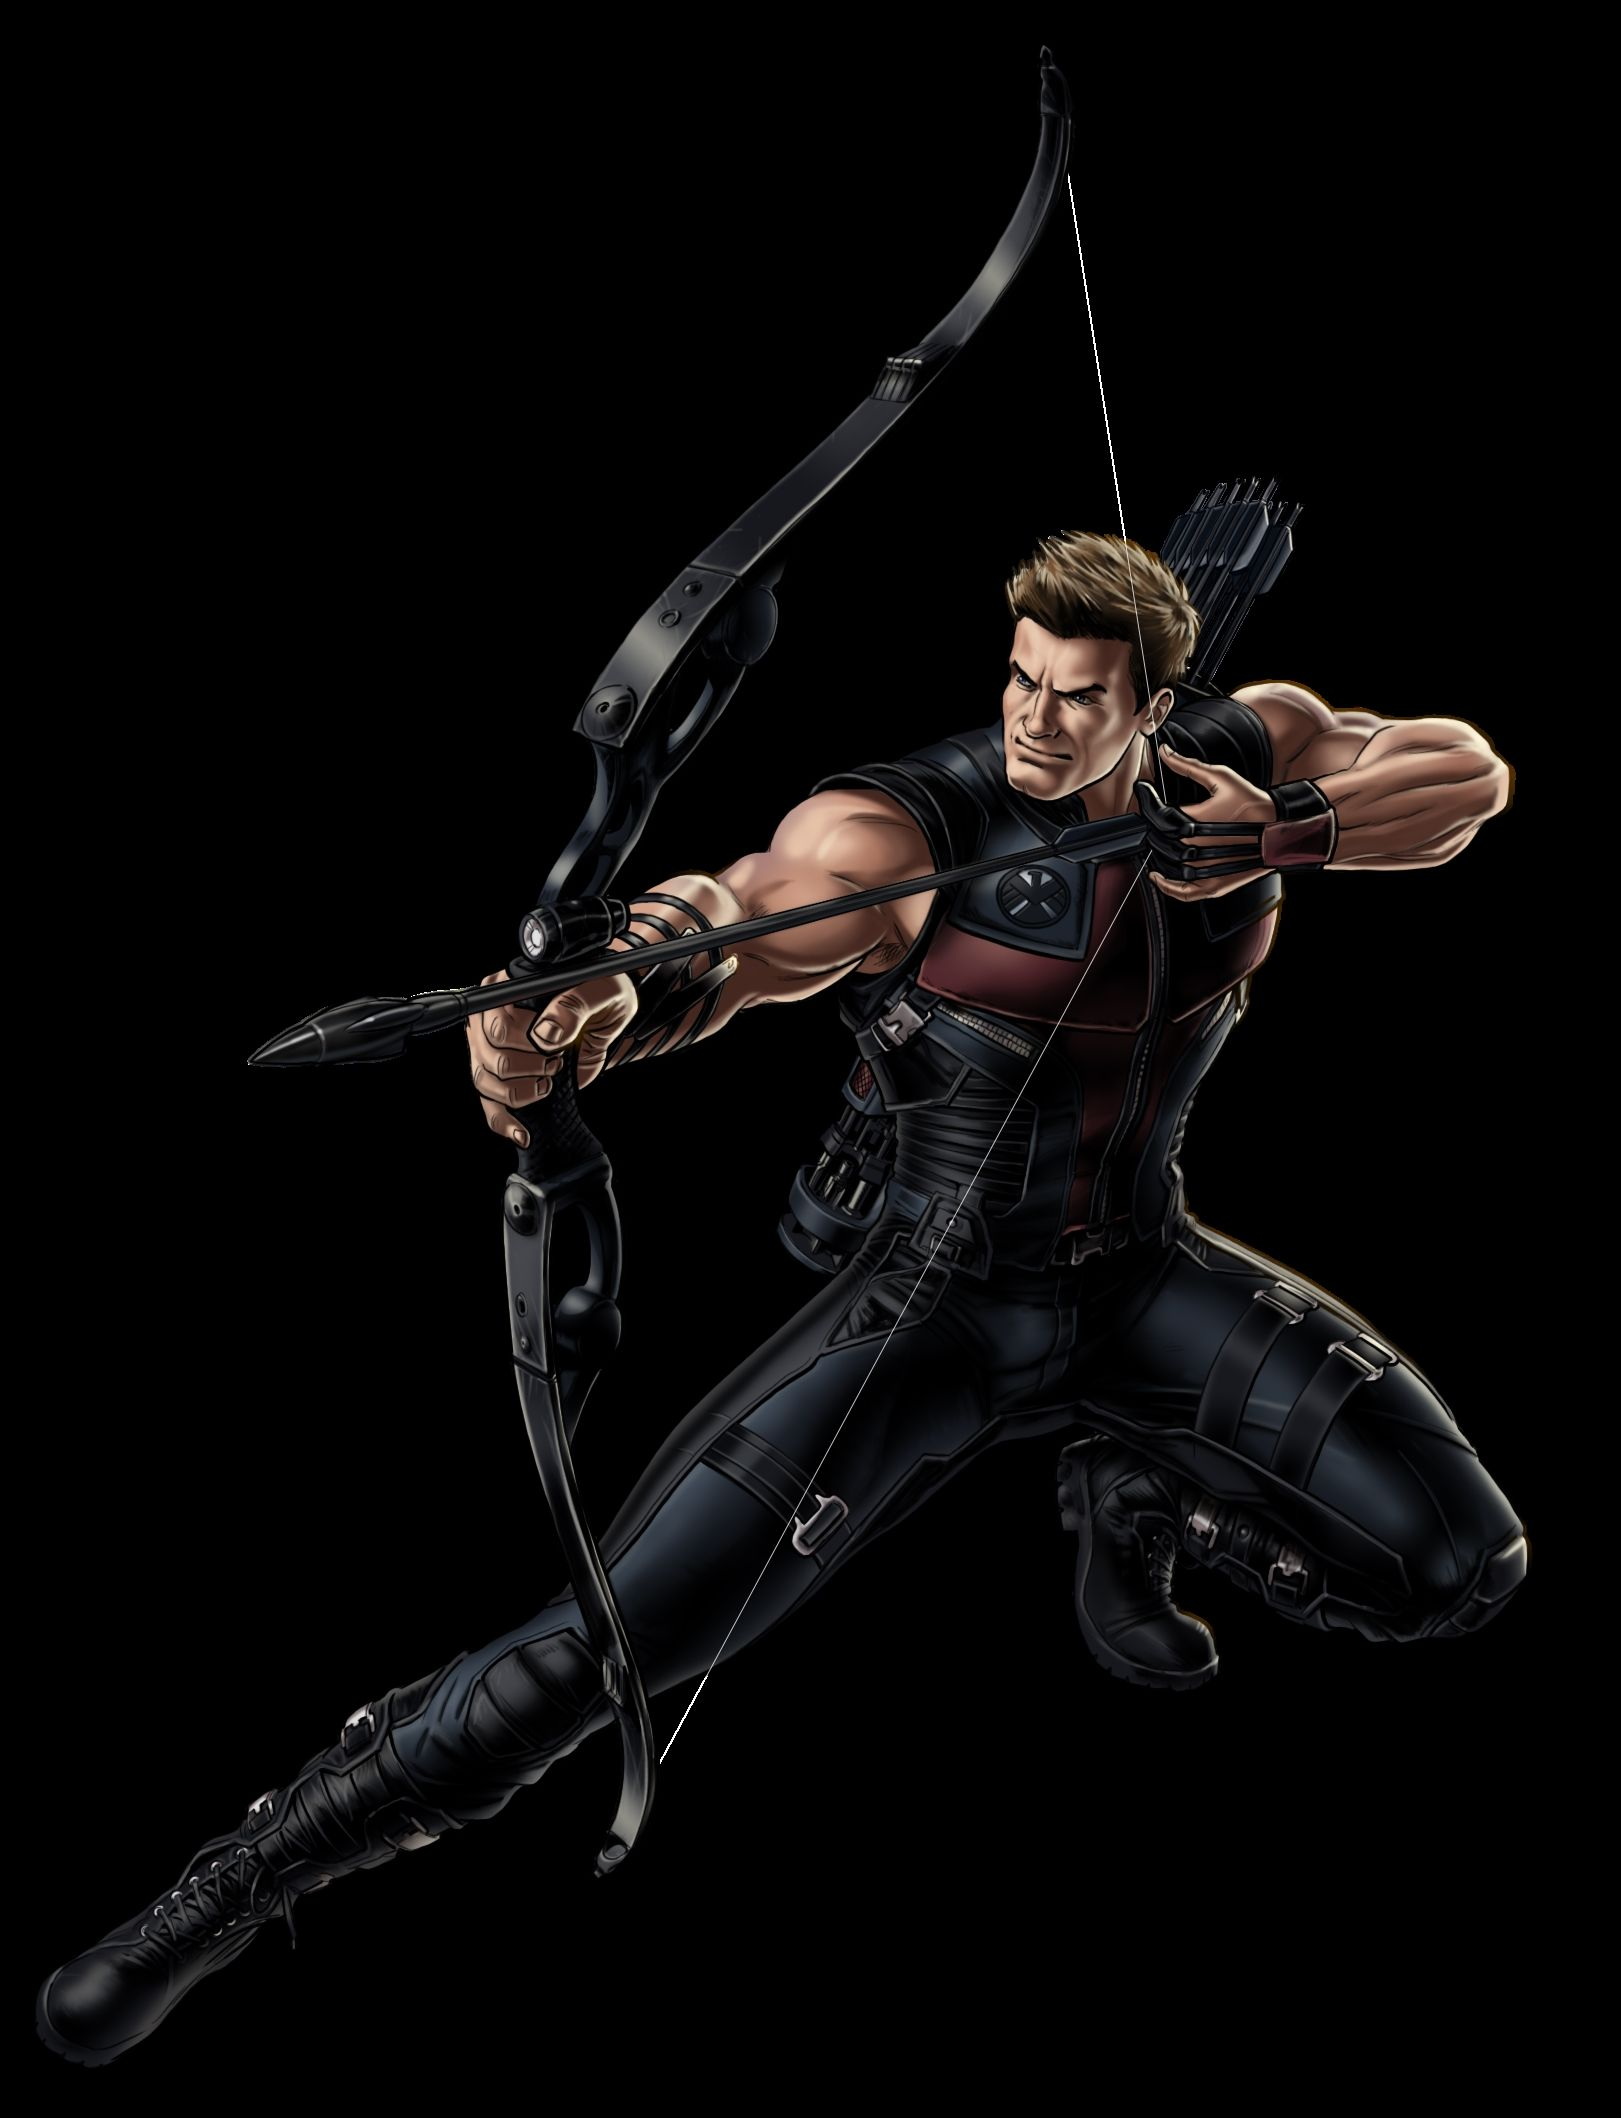 1621x2118 Hawkeye Marvel Avenger Portrait Art Mobile Iphone